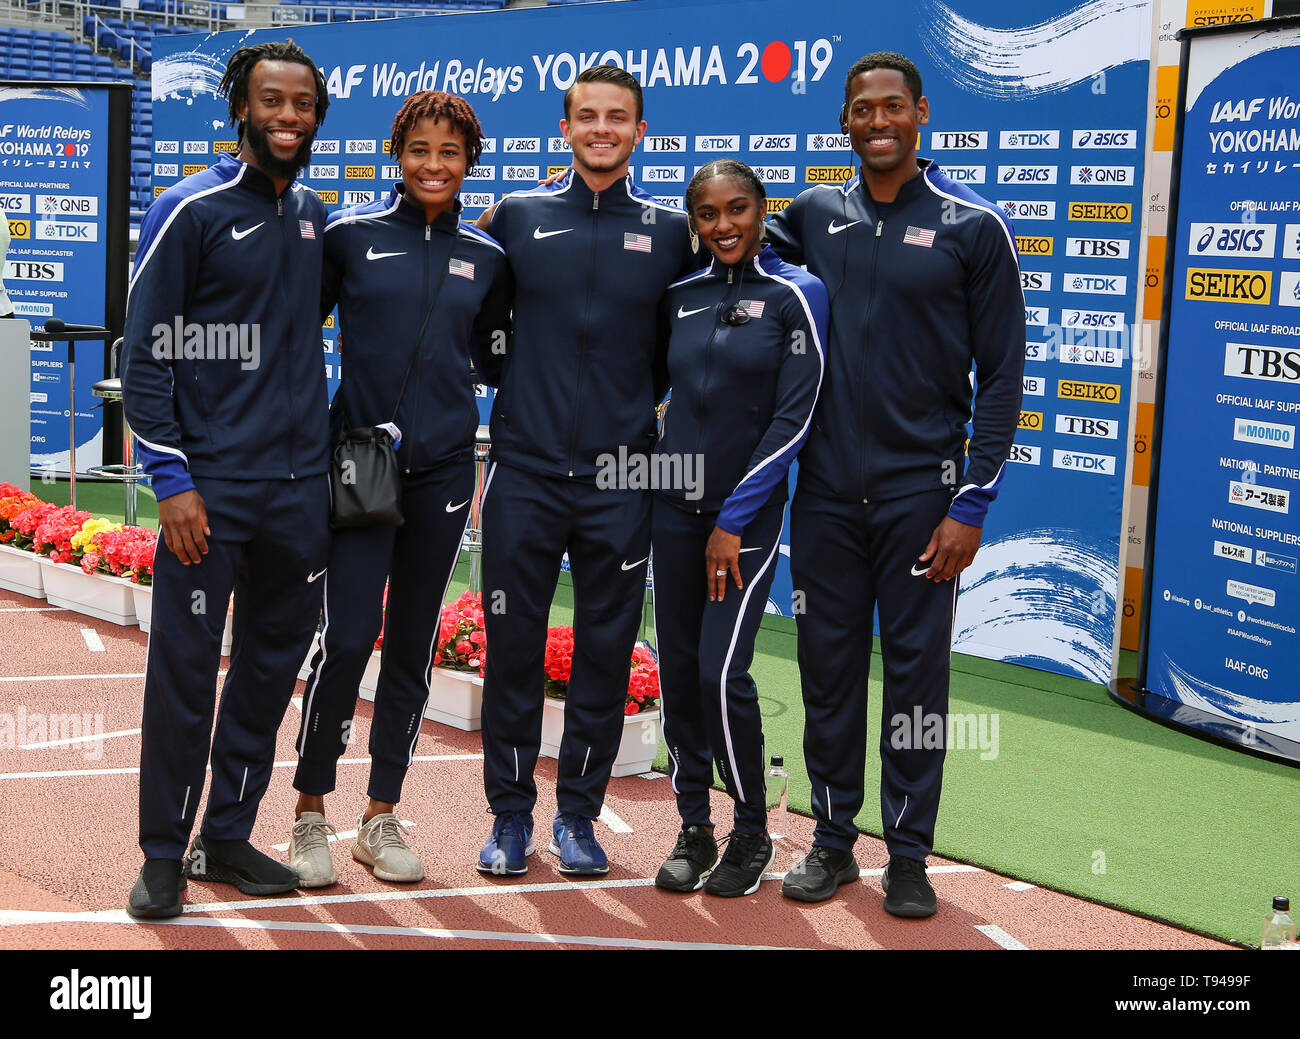 YOKOHAMA, JAPAN - MAY 10: USA's shuttle hurdles relay team (Devon Allen, Christina Clemons, Freddie Crittenden, Ryan Fontenot, Queen Harrison, Sharika Nelvis) during the official press conference of the 2019 IAAF World Relay Championships at the Nissan Stadium on May 10, 2019 in Yokohama, Japan. (Photo by Roger Sedres for the IAAF) - Stock Image